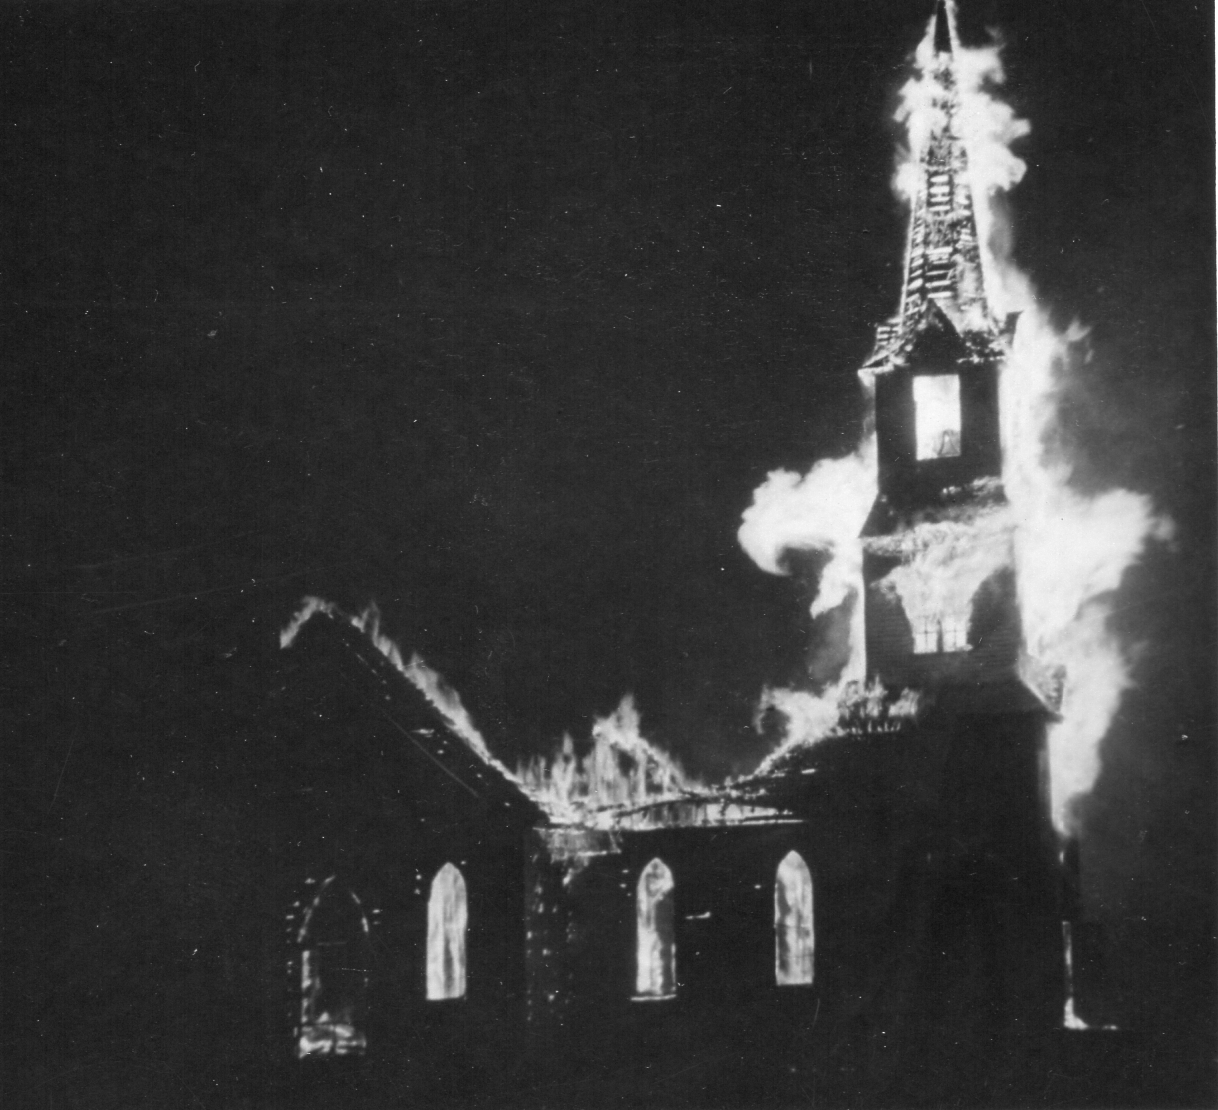 1st West Denmark church burning Sept. 9, 1937